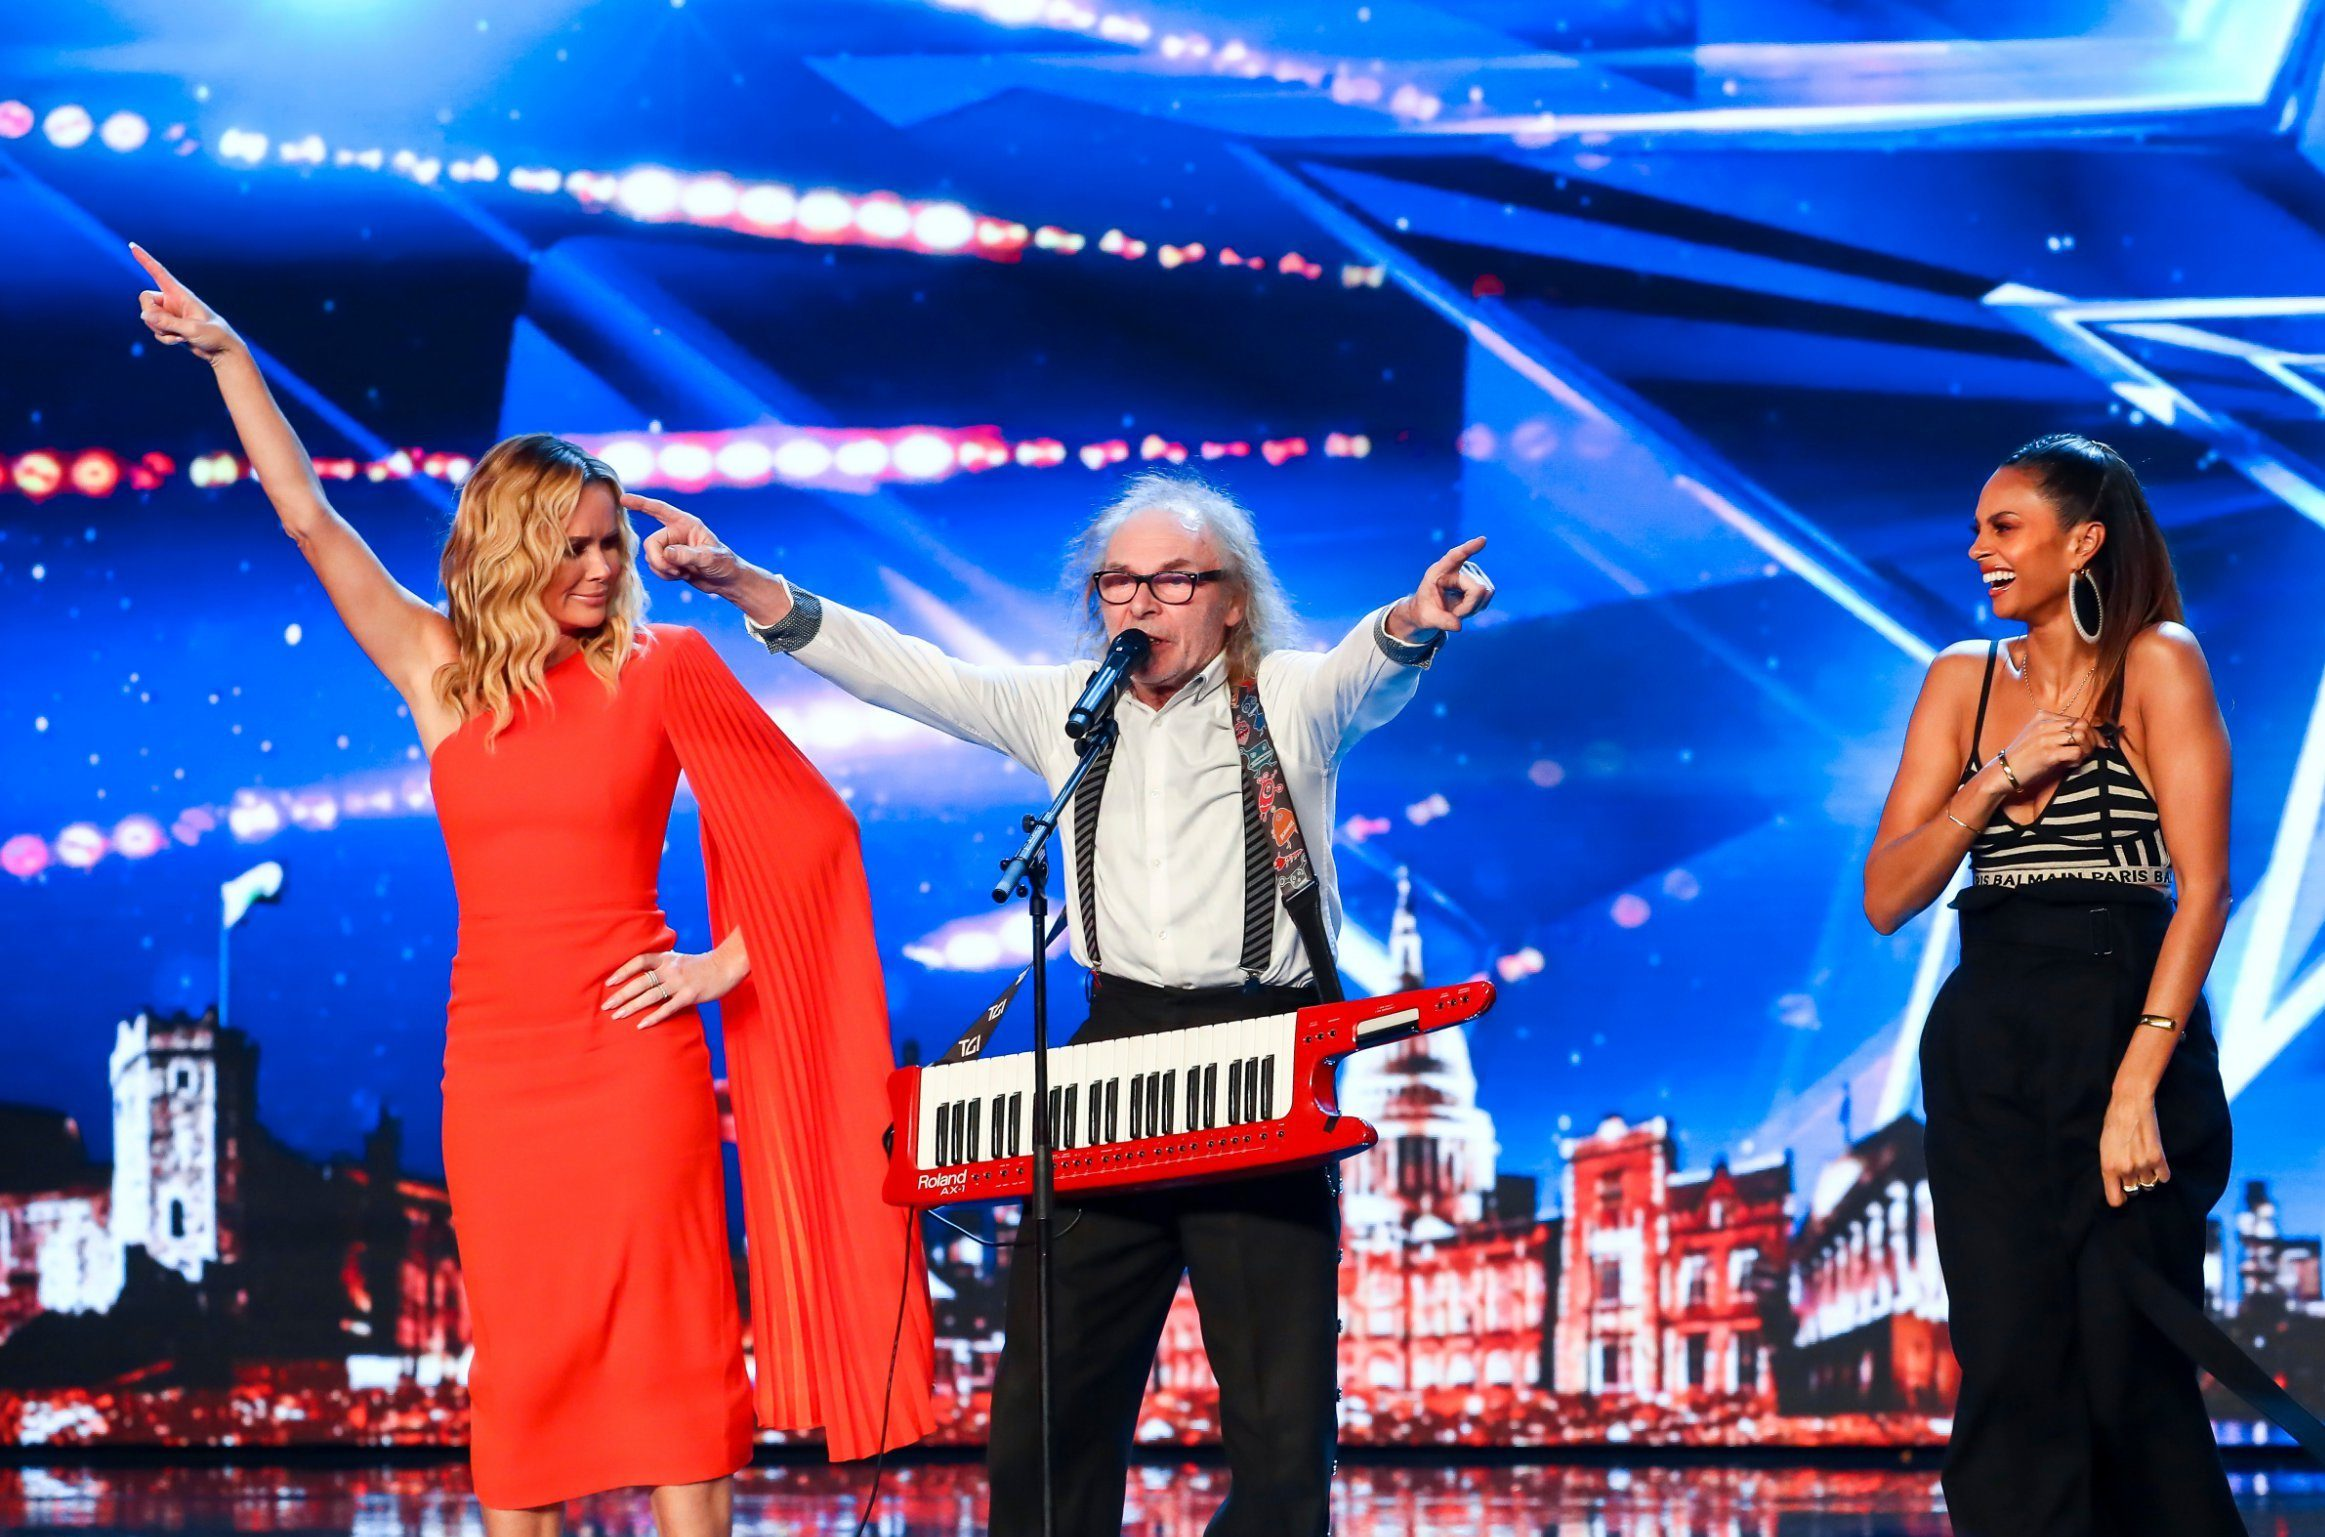 Britain's Got Talent viewers claim show is 'set up' after Simon Cowell got on stage to help contestant